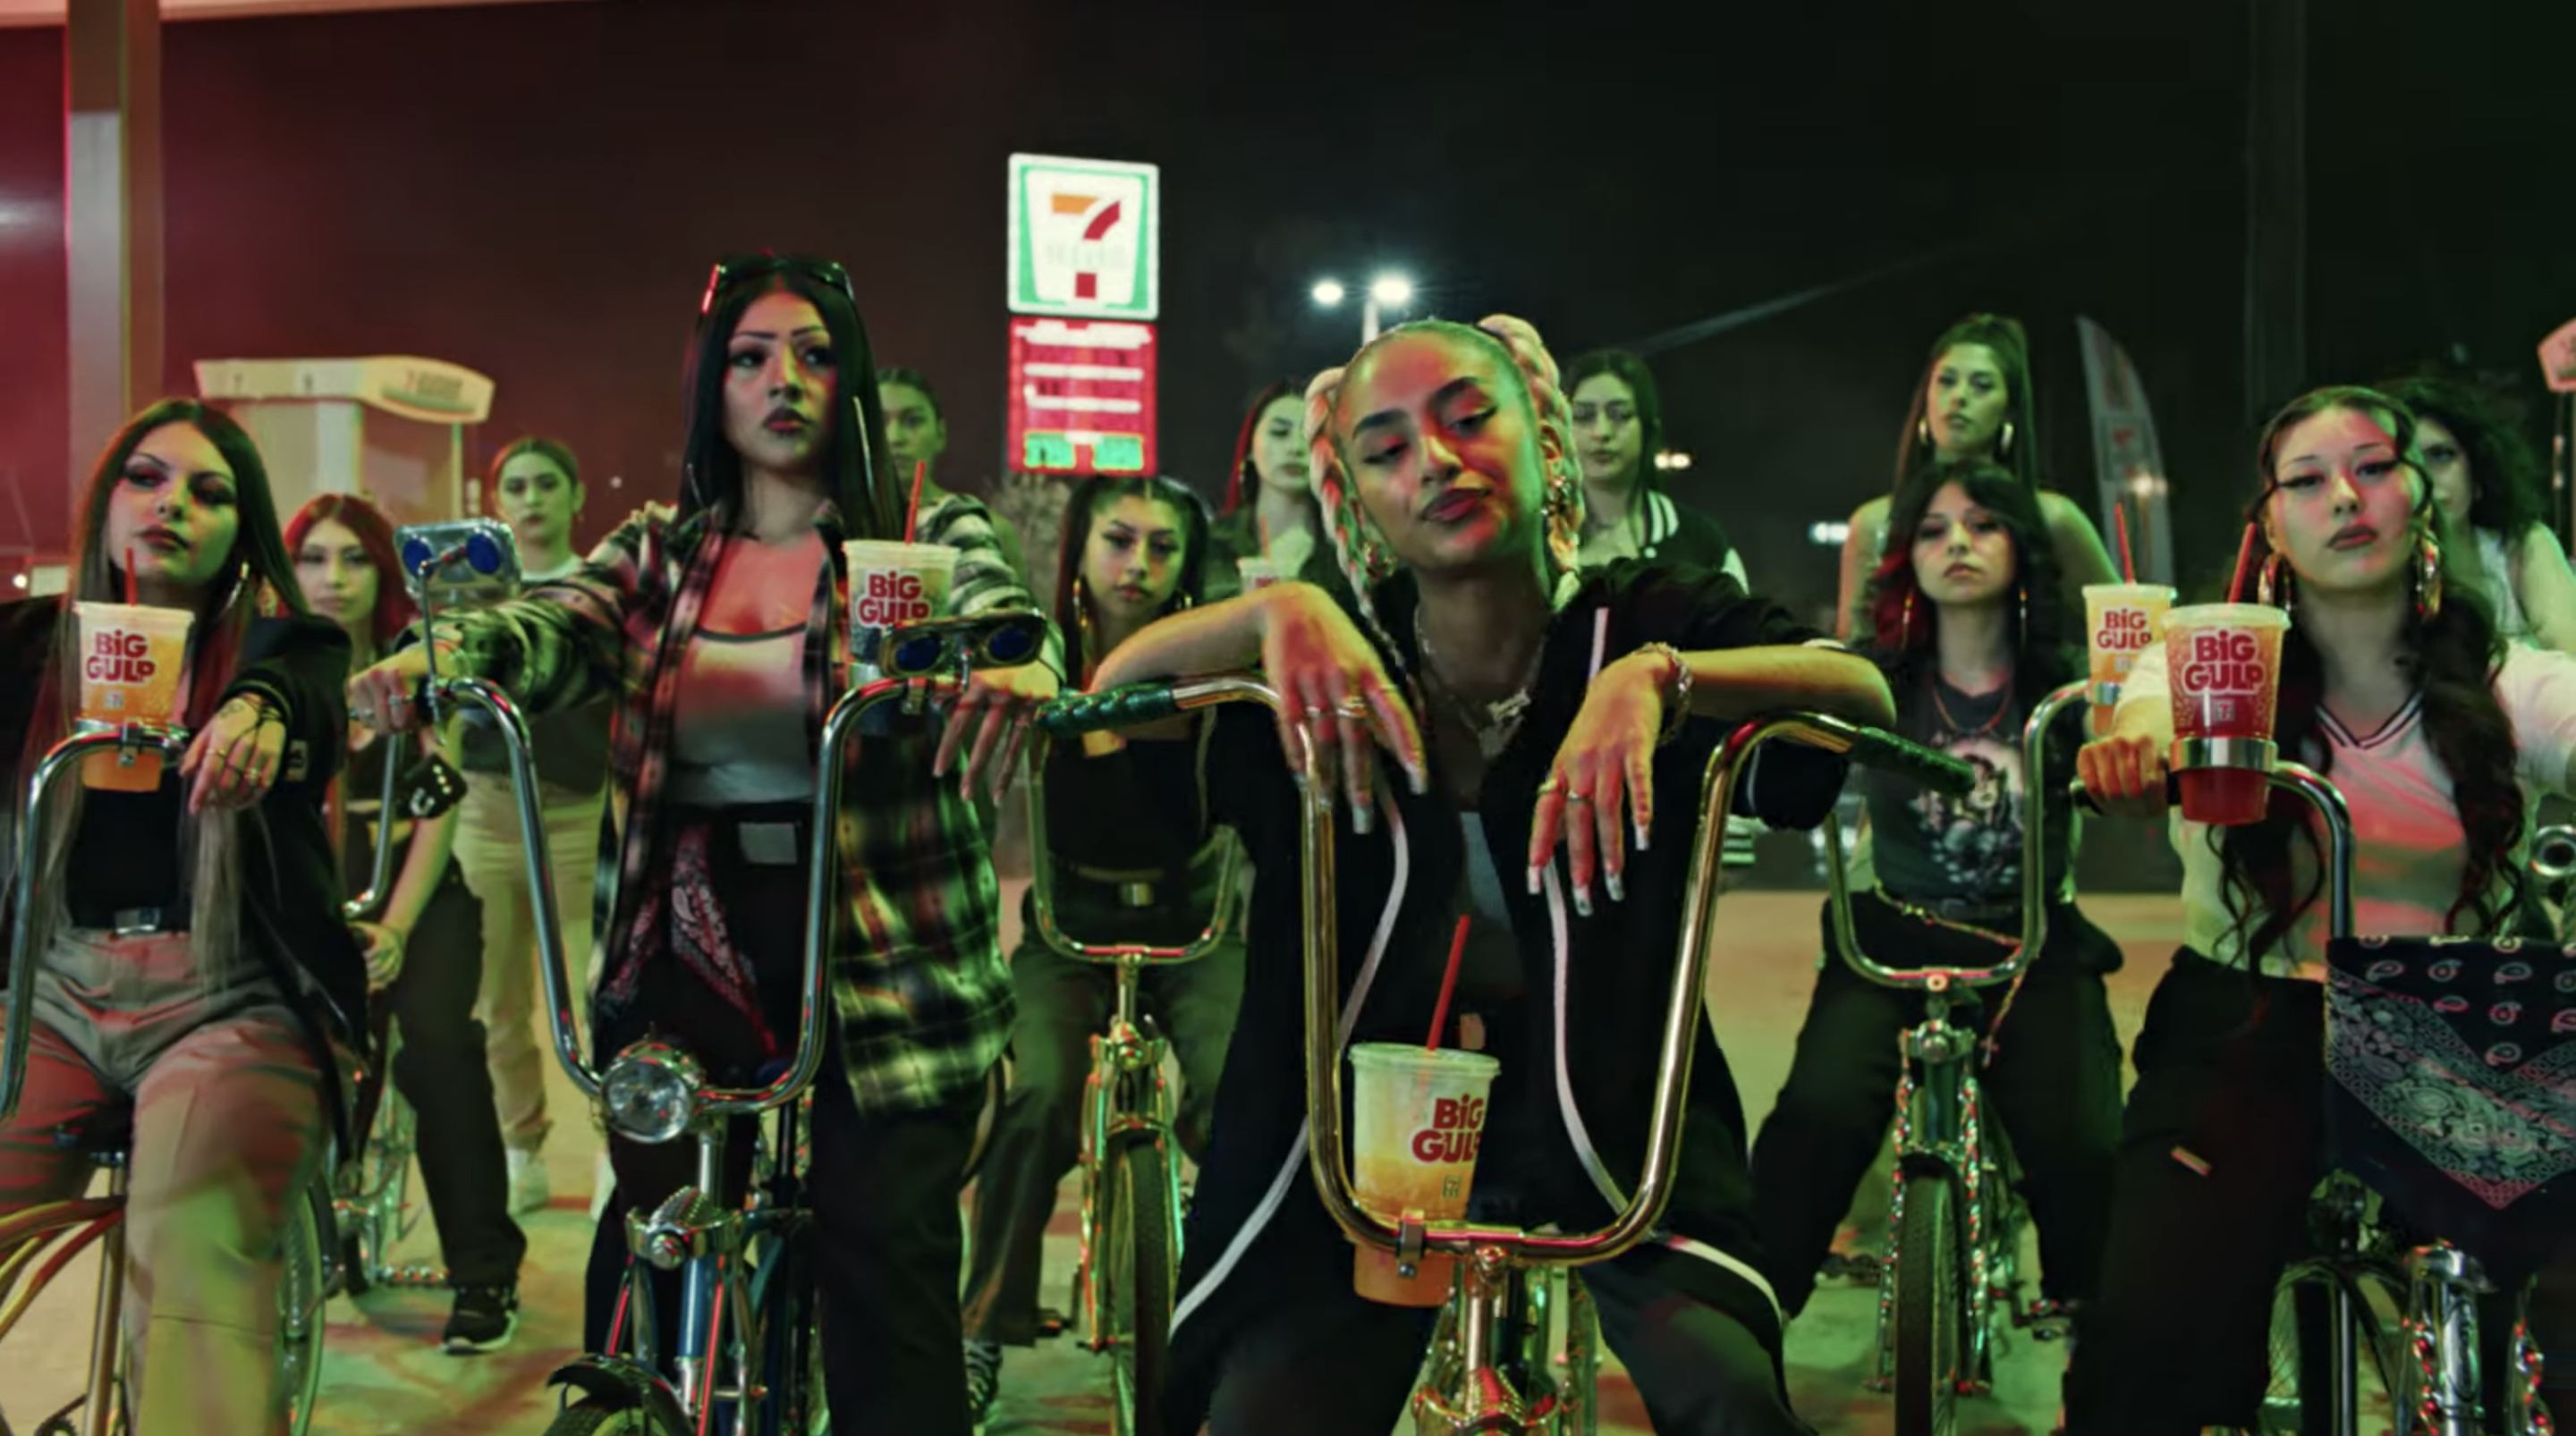 All-female lowrider bike club looks directly at camera